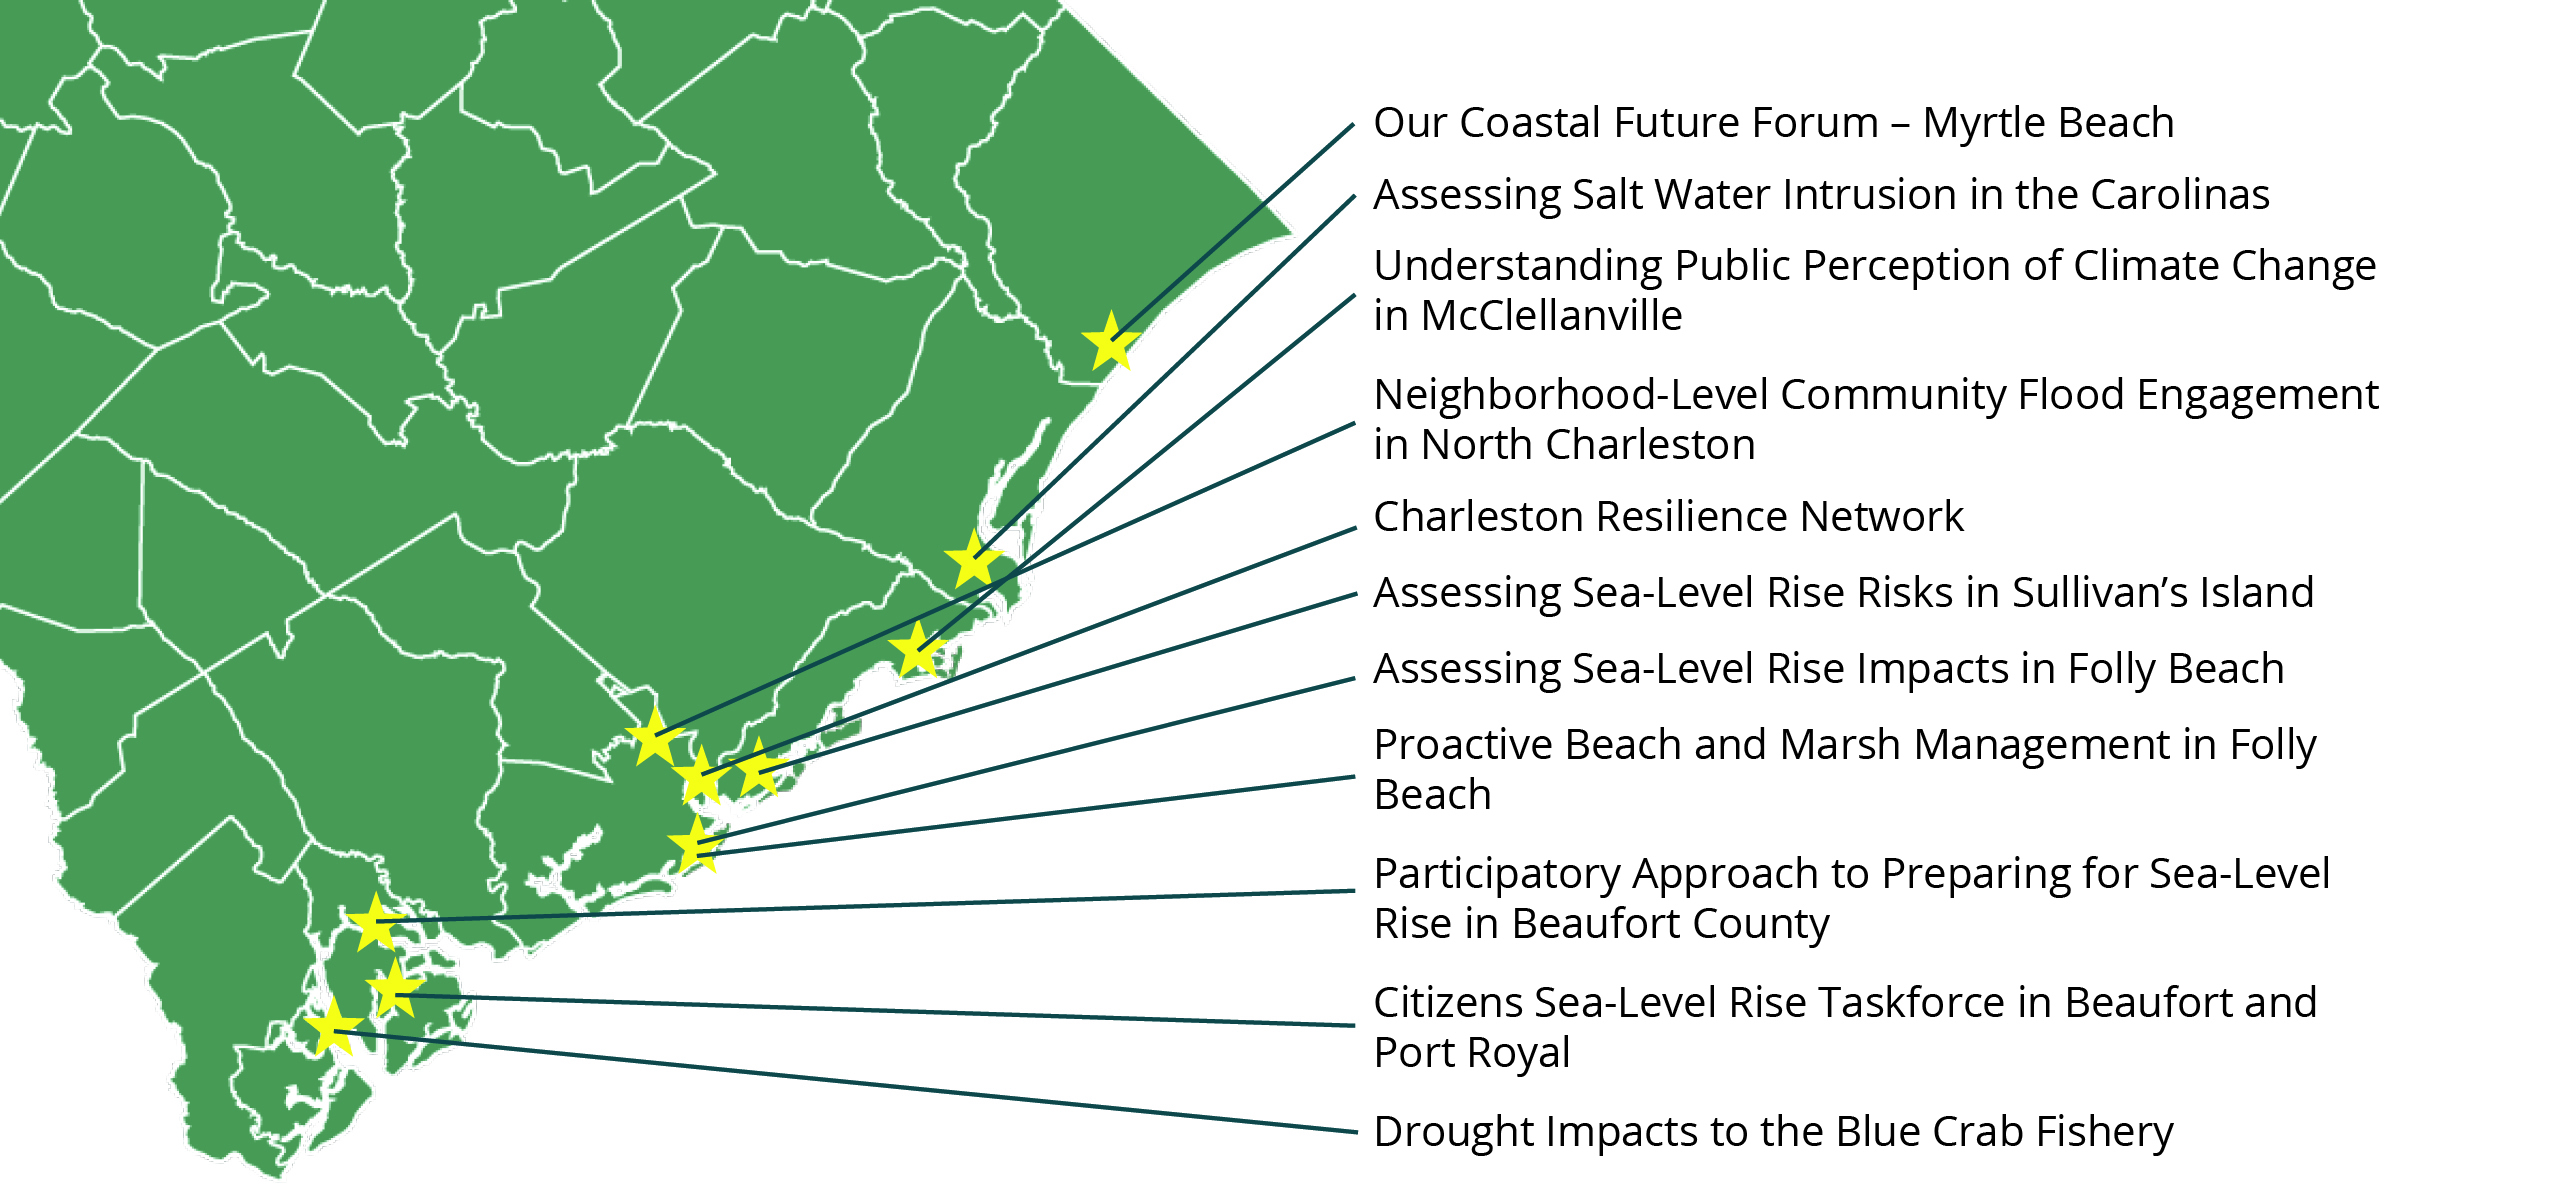 A map of coastal South Carolina showing stars where the S.C. Sea Grant Consortium is doing resilience projects.